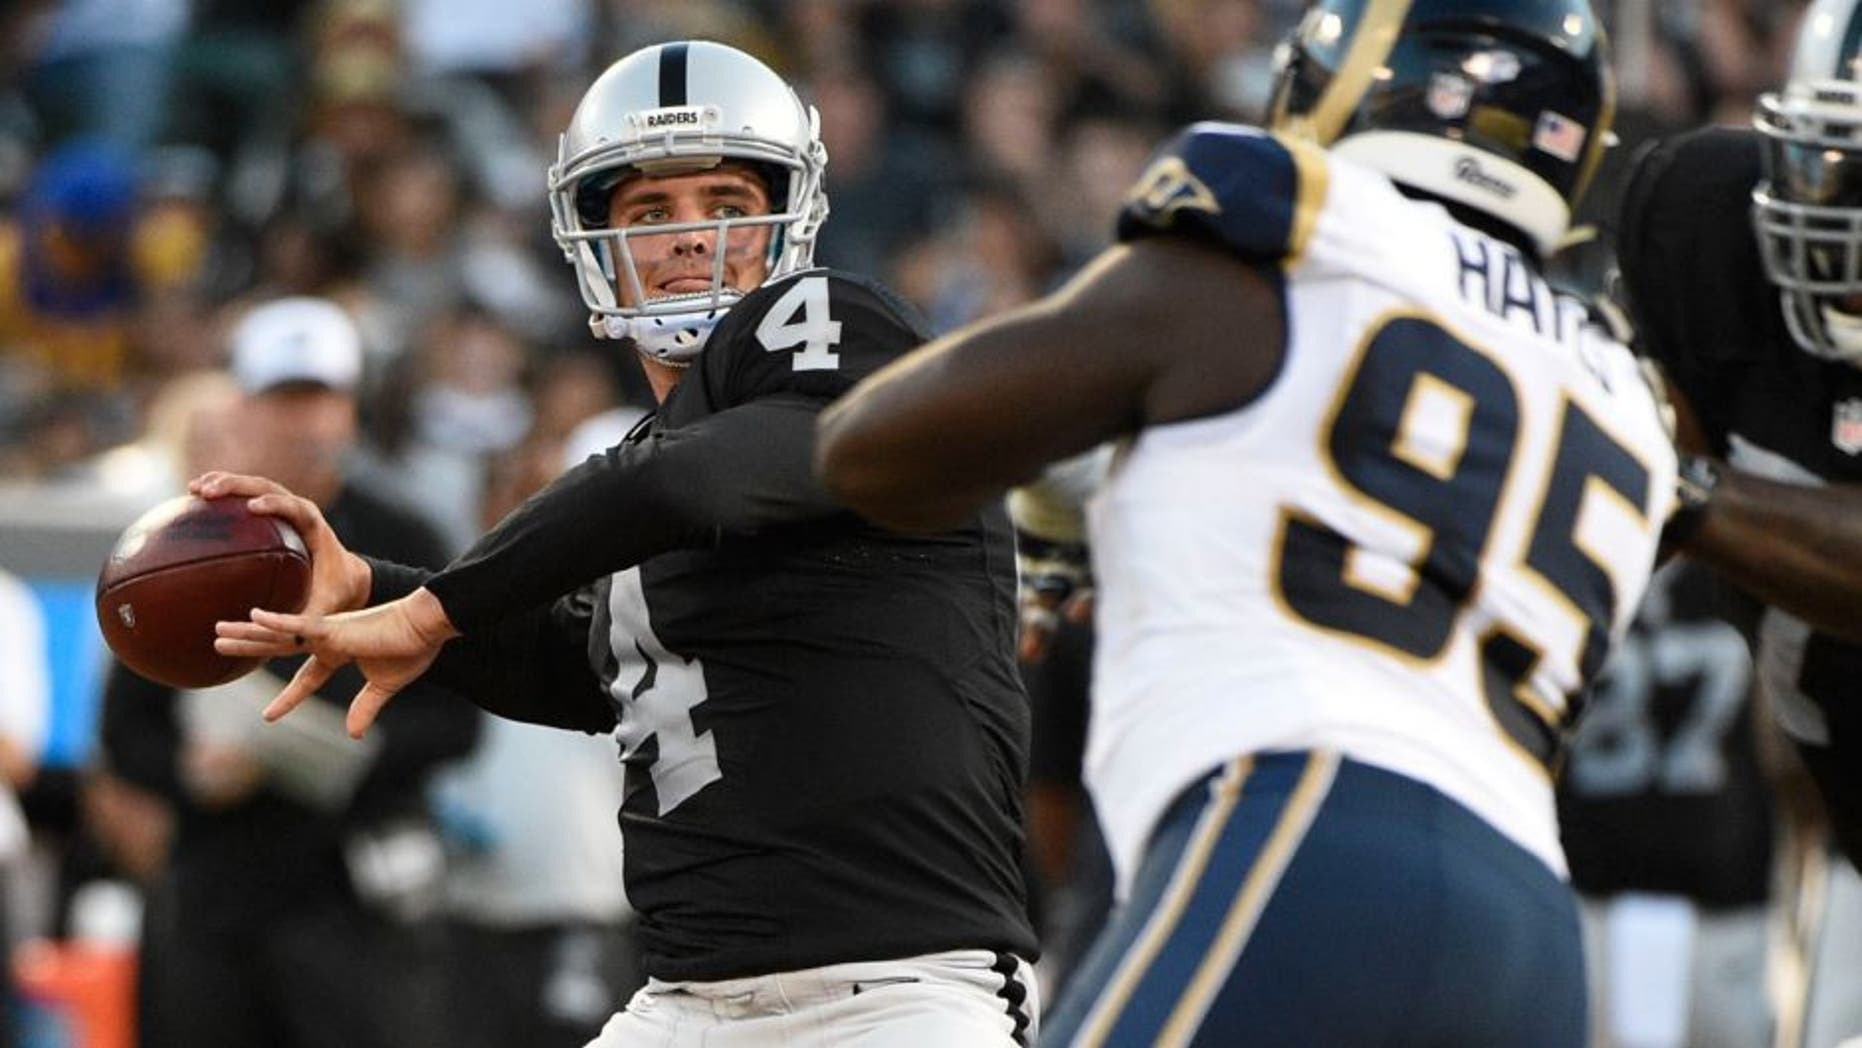 August 14, 2015; Oakland, CA, USA; Oakland Raiders quarterback Derek Carr (4) passes the football against St. Louis Rams defensive end William Hayes (95) during the first quarter in a preseason NFL football game at O.co Coliseum. Mandatory Credit: Kyle Terada-USA TODAY Sports